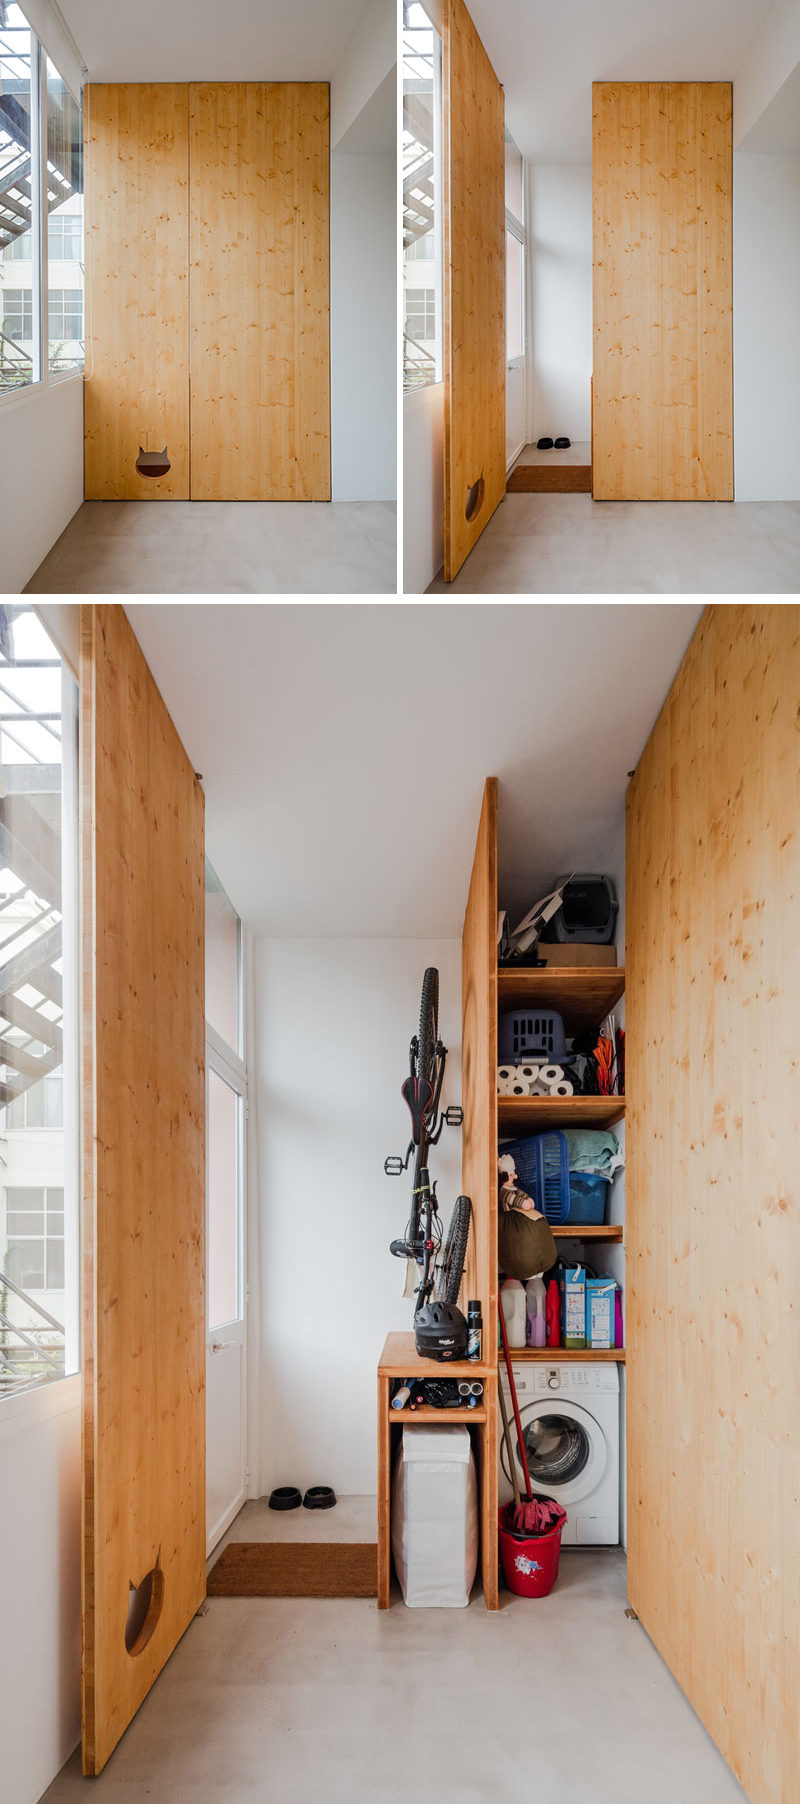 This small and modern apartment has a closet to hide away the washing machine and cleaning products, and when the door is closed, it reveals a cut-out in the door that doubles as a cute cat door.